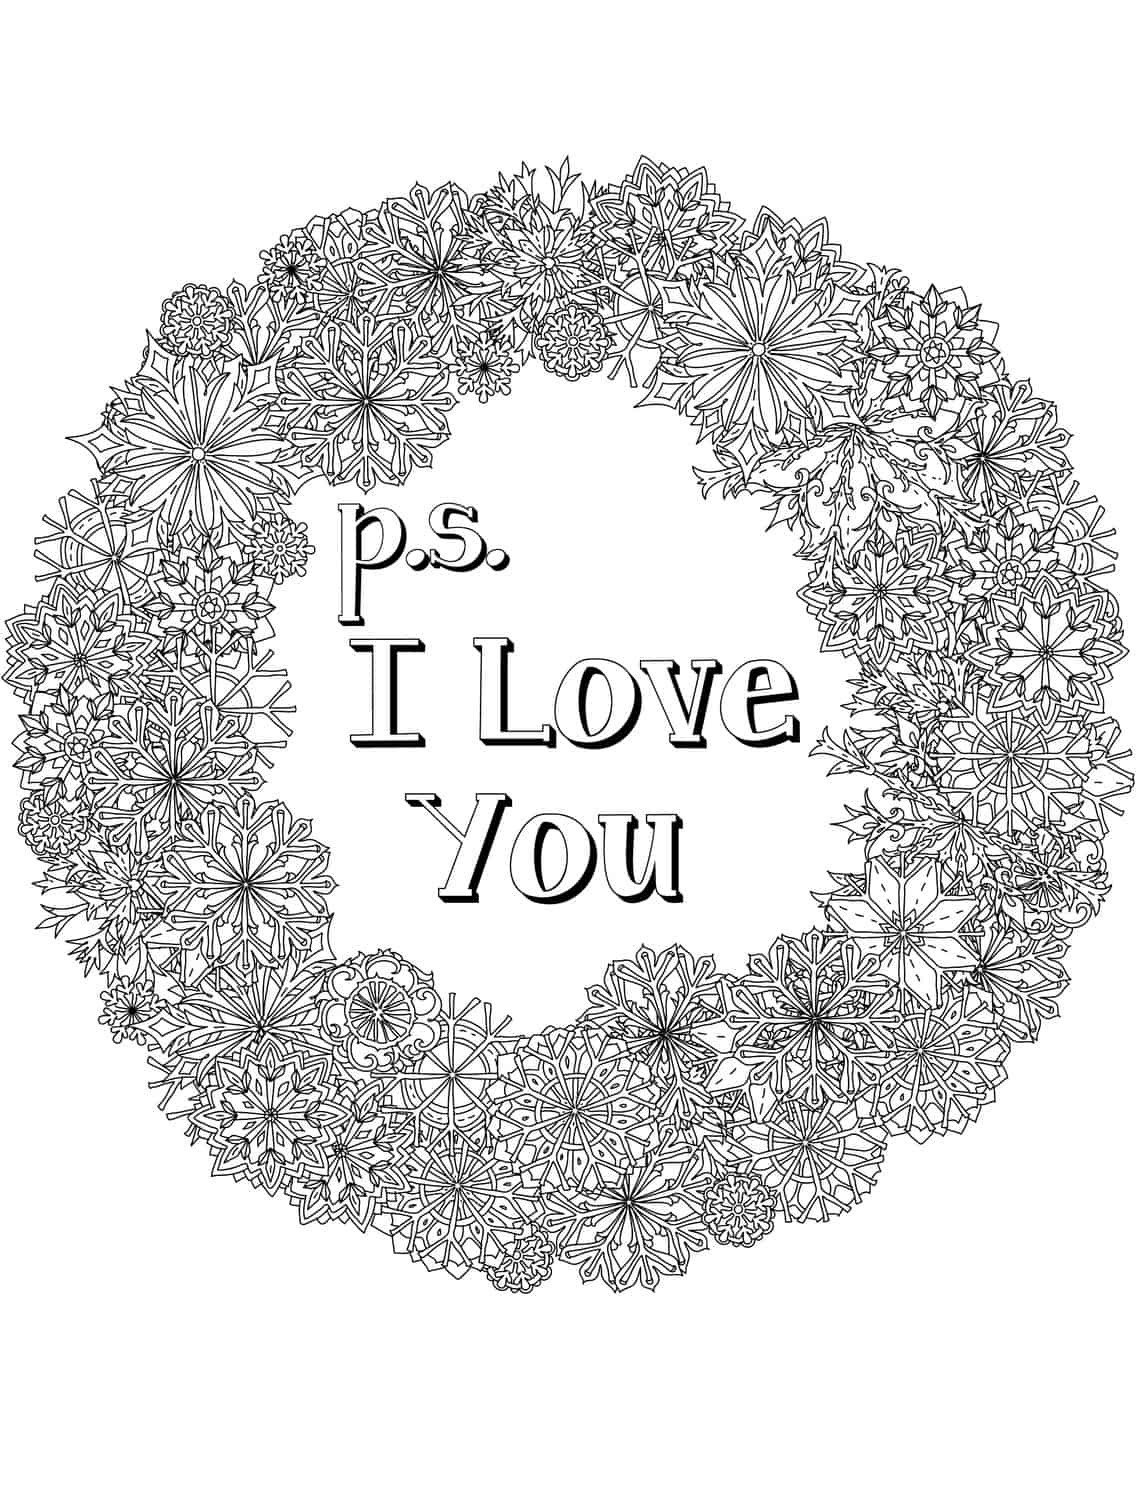 Printable Coloring Pages For Adults Love : Free printable valentines adult coloring pages page